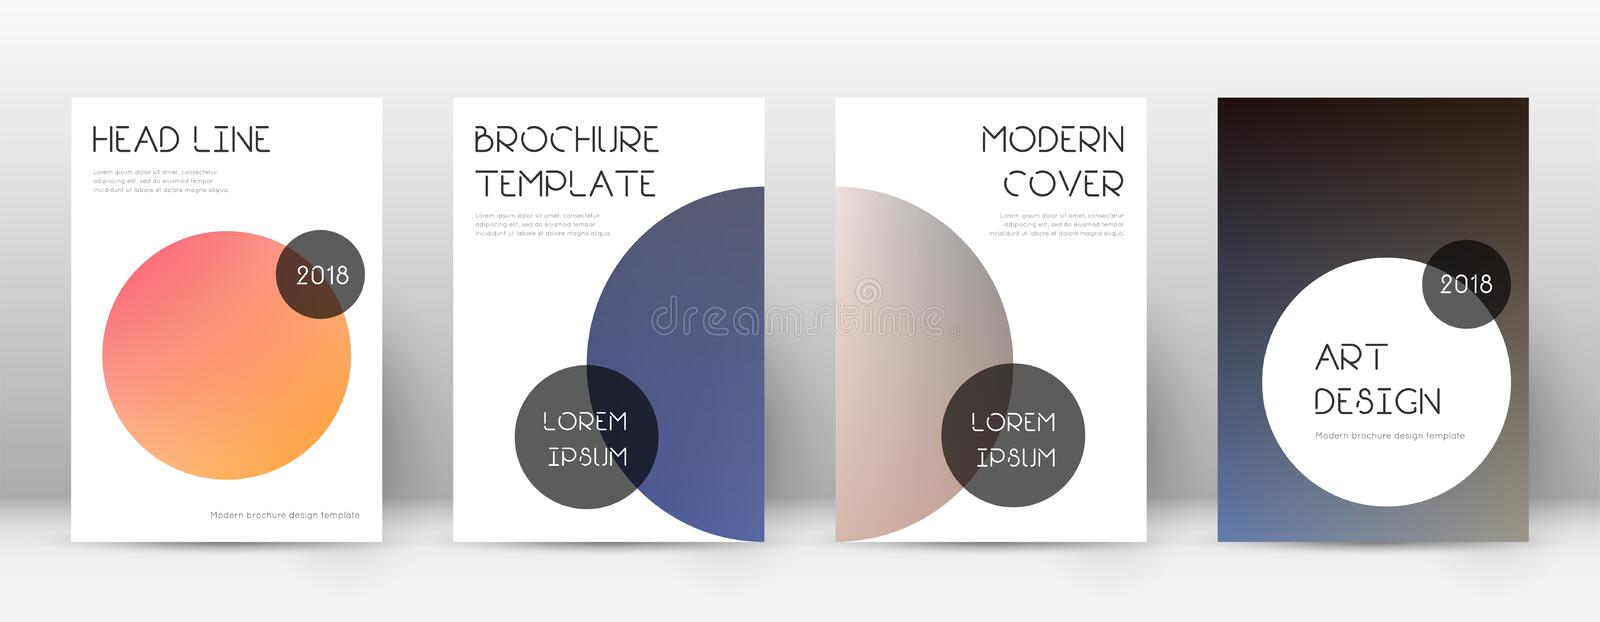 Flyer layout. Trendy marvelous template for Brochure, Annual Report, Magazine, Poster, Corporate Presentation, Portfolio, Flyer. Beauteous color transition vector illustration